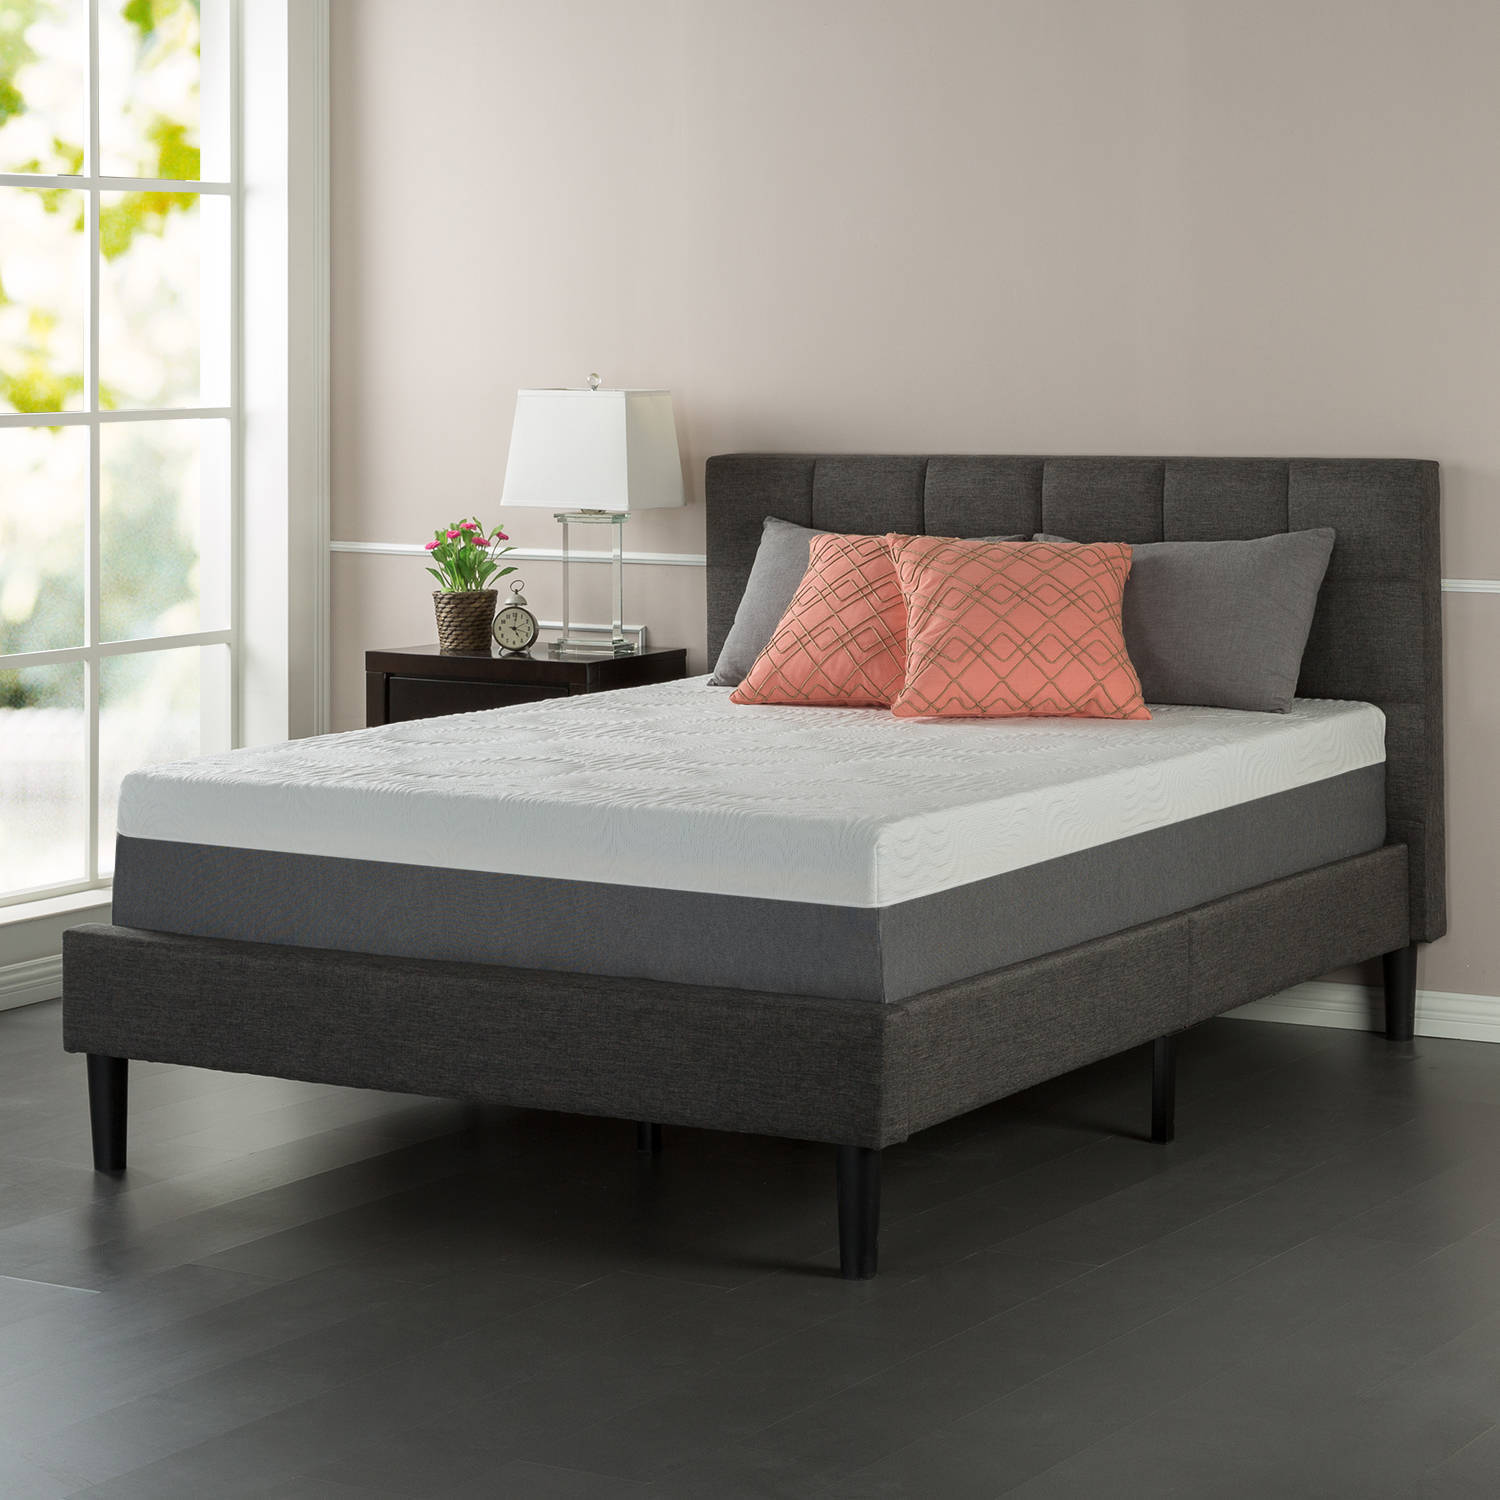 "Better Homes and Gardens 12"" Gel Infused Memory Foam Mattress, Multiple  Sizes - Walmart.com"